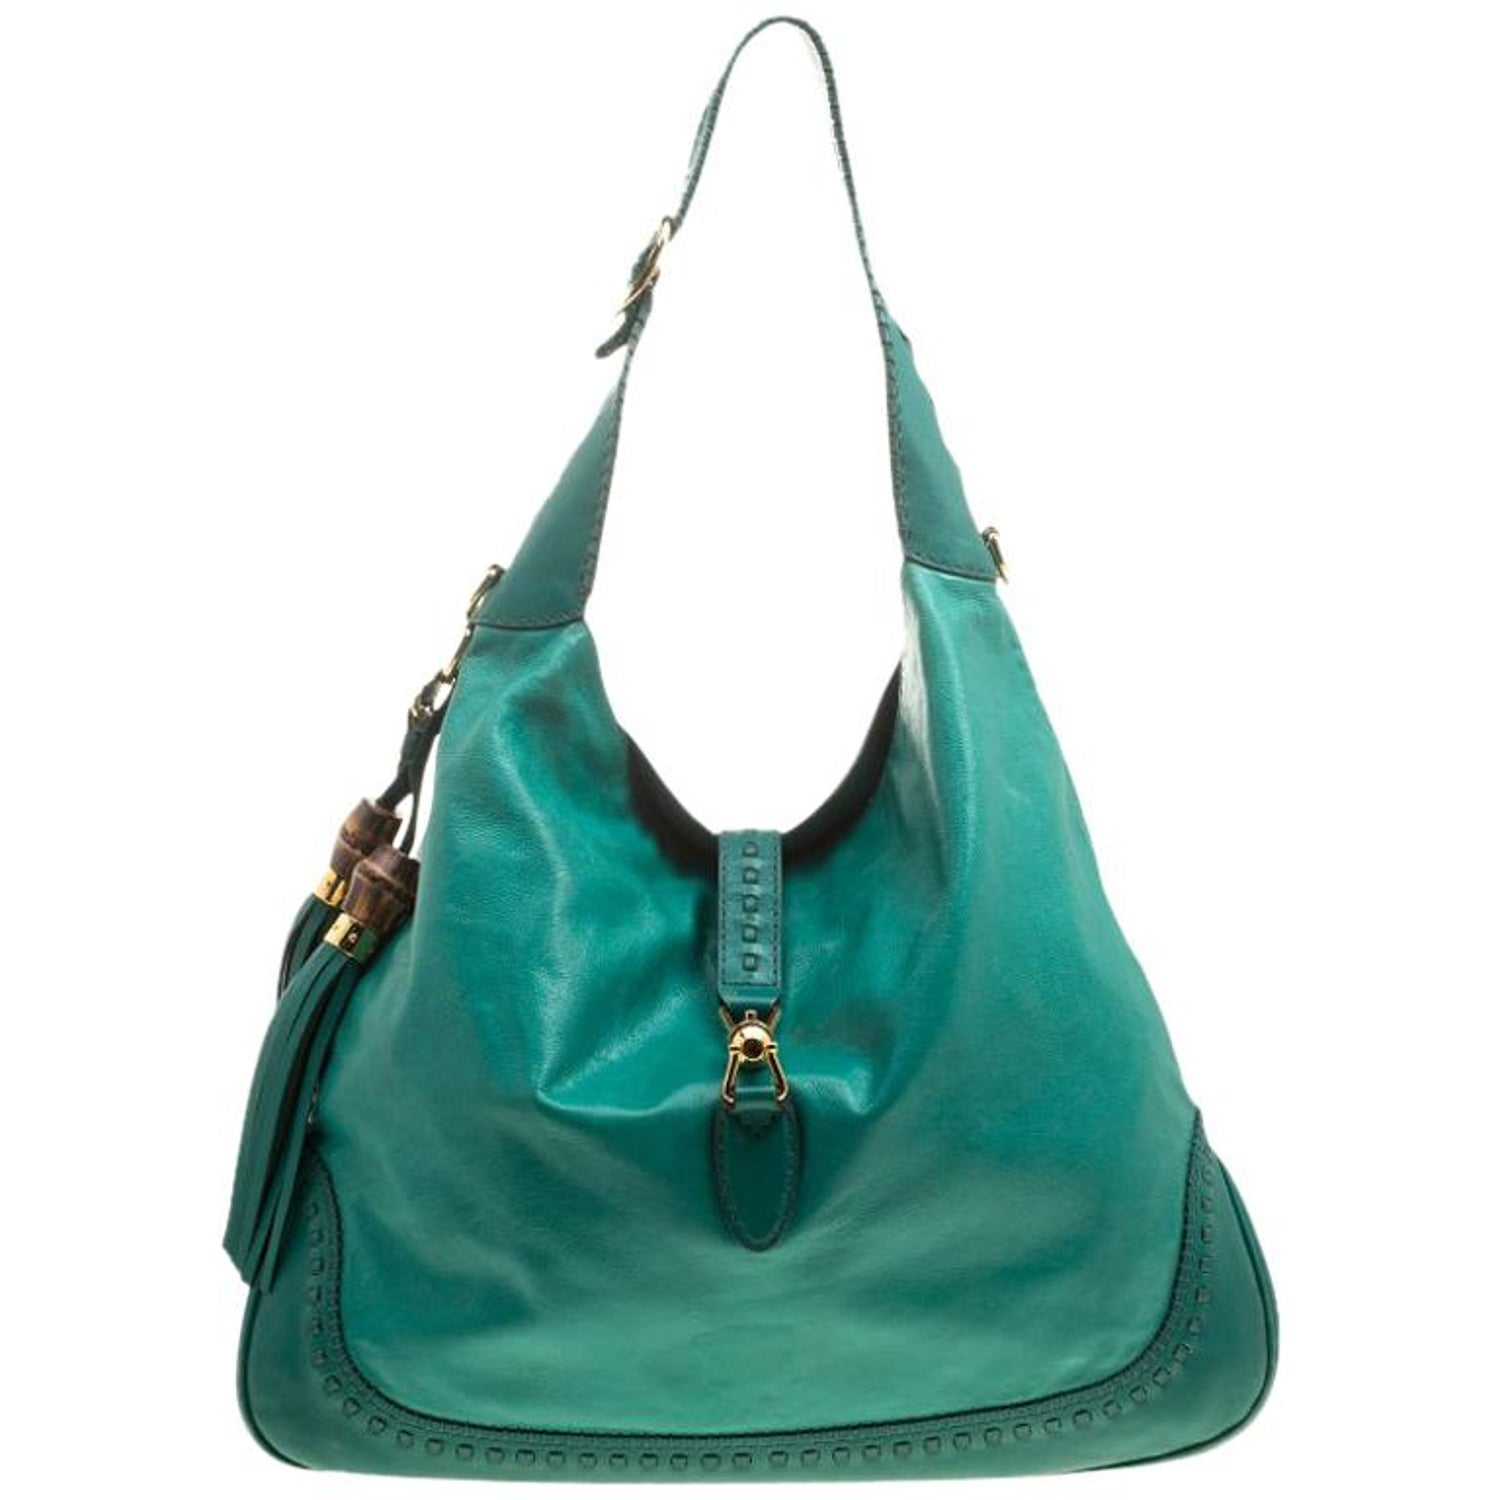 7cc8a1d42 Gucci Green Leather Large New Jackie Shoulder Bag For Sale at 1stdibs